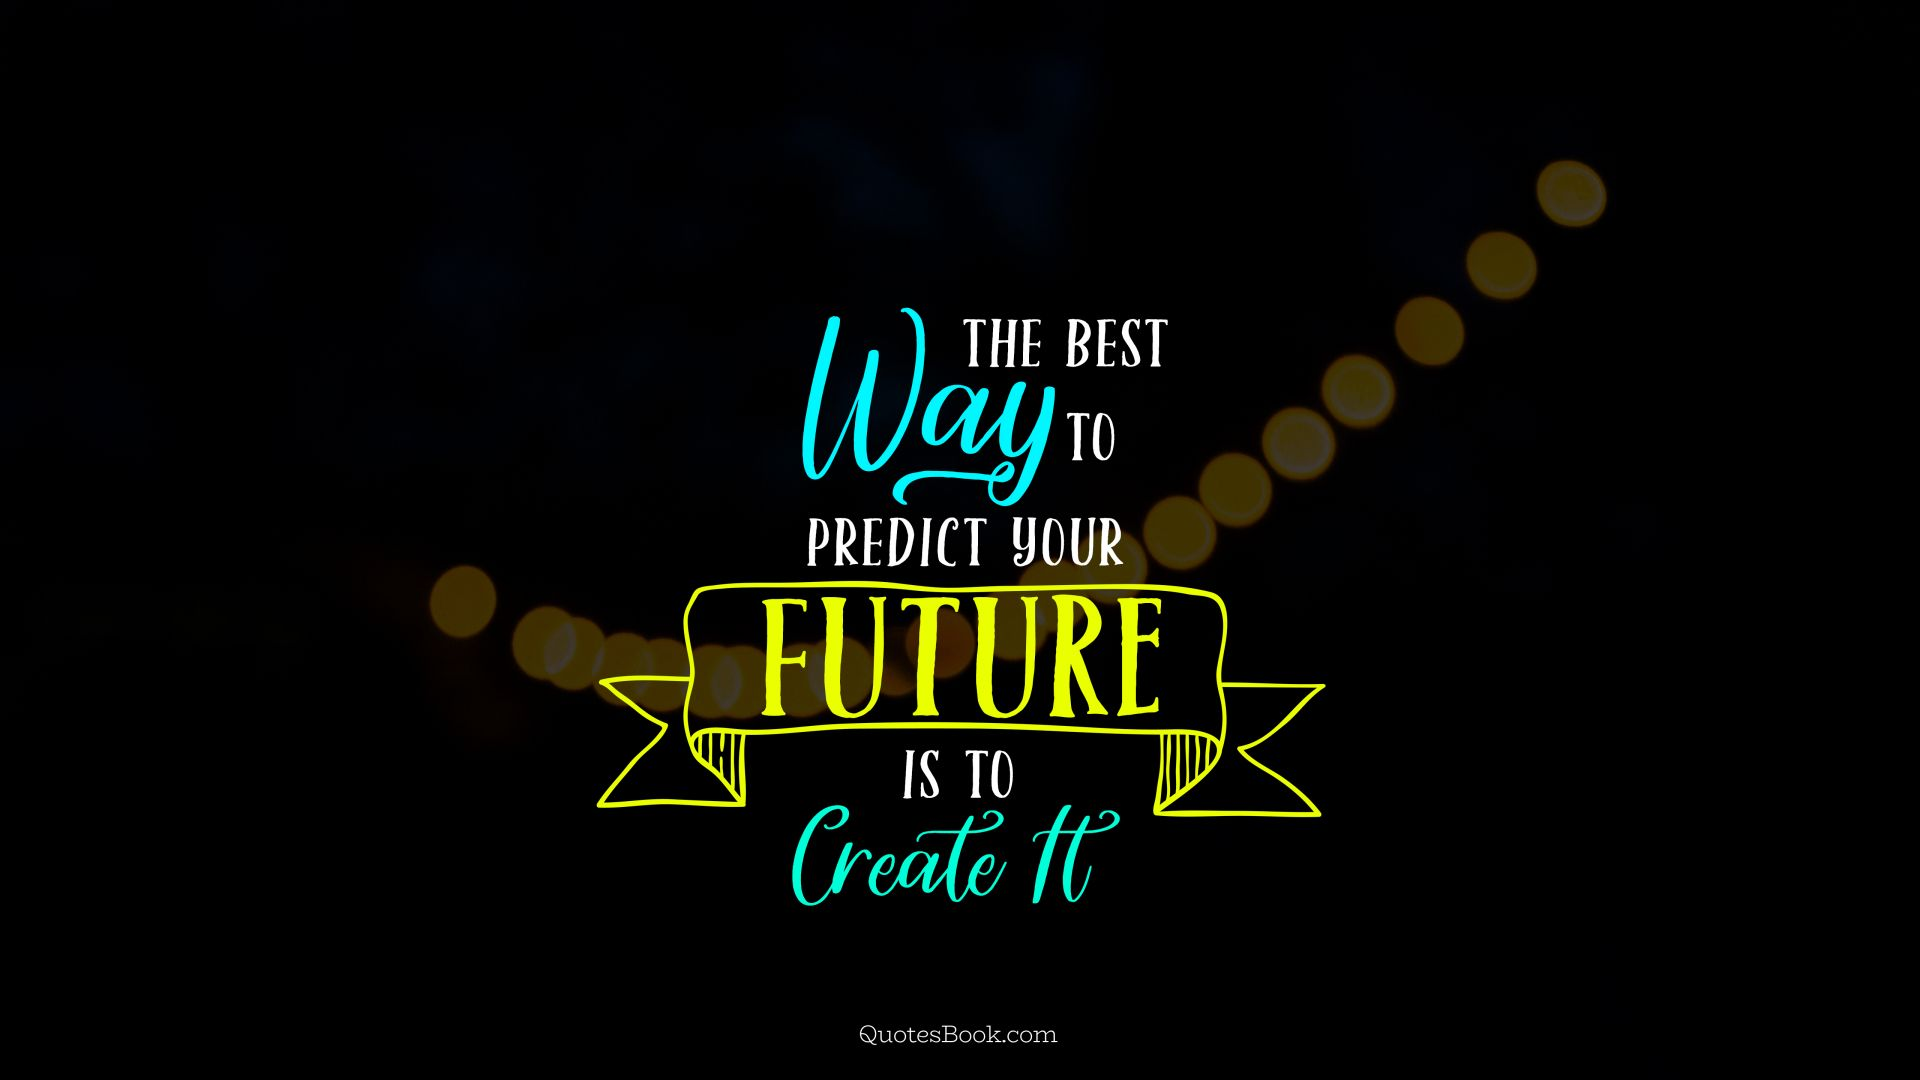 The best way to predict your future is to create it